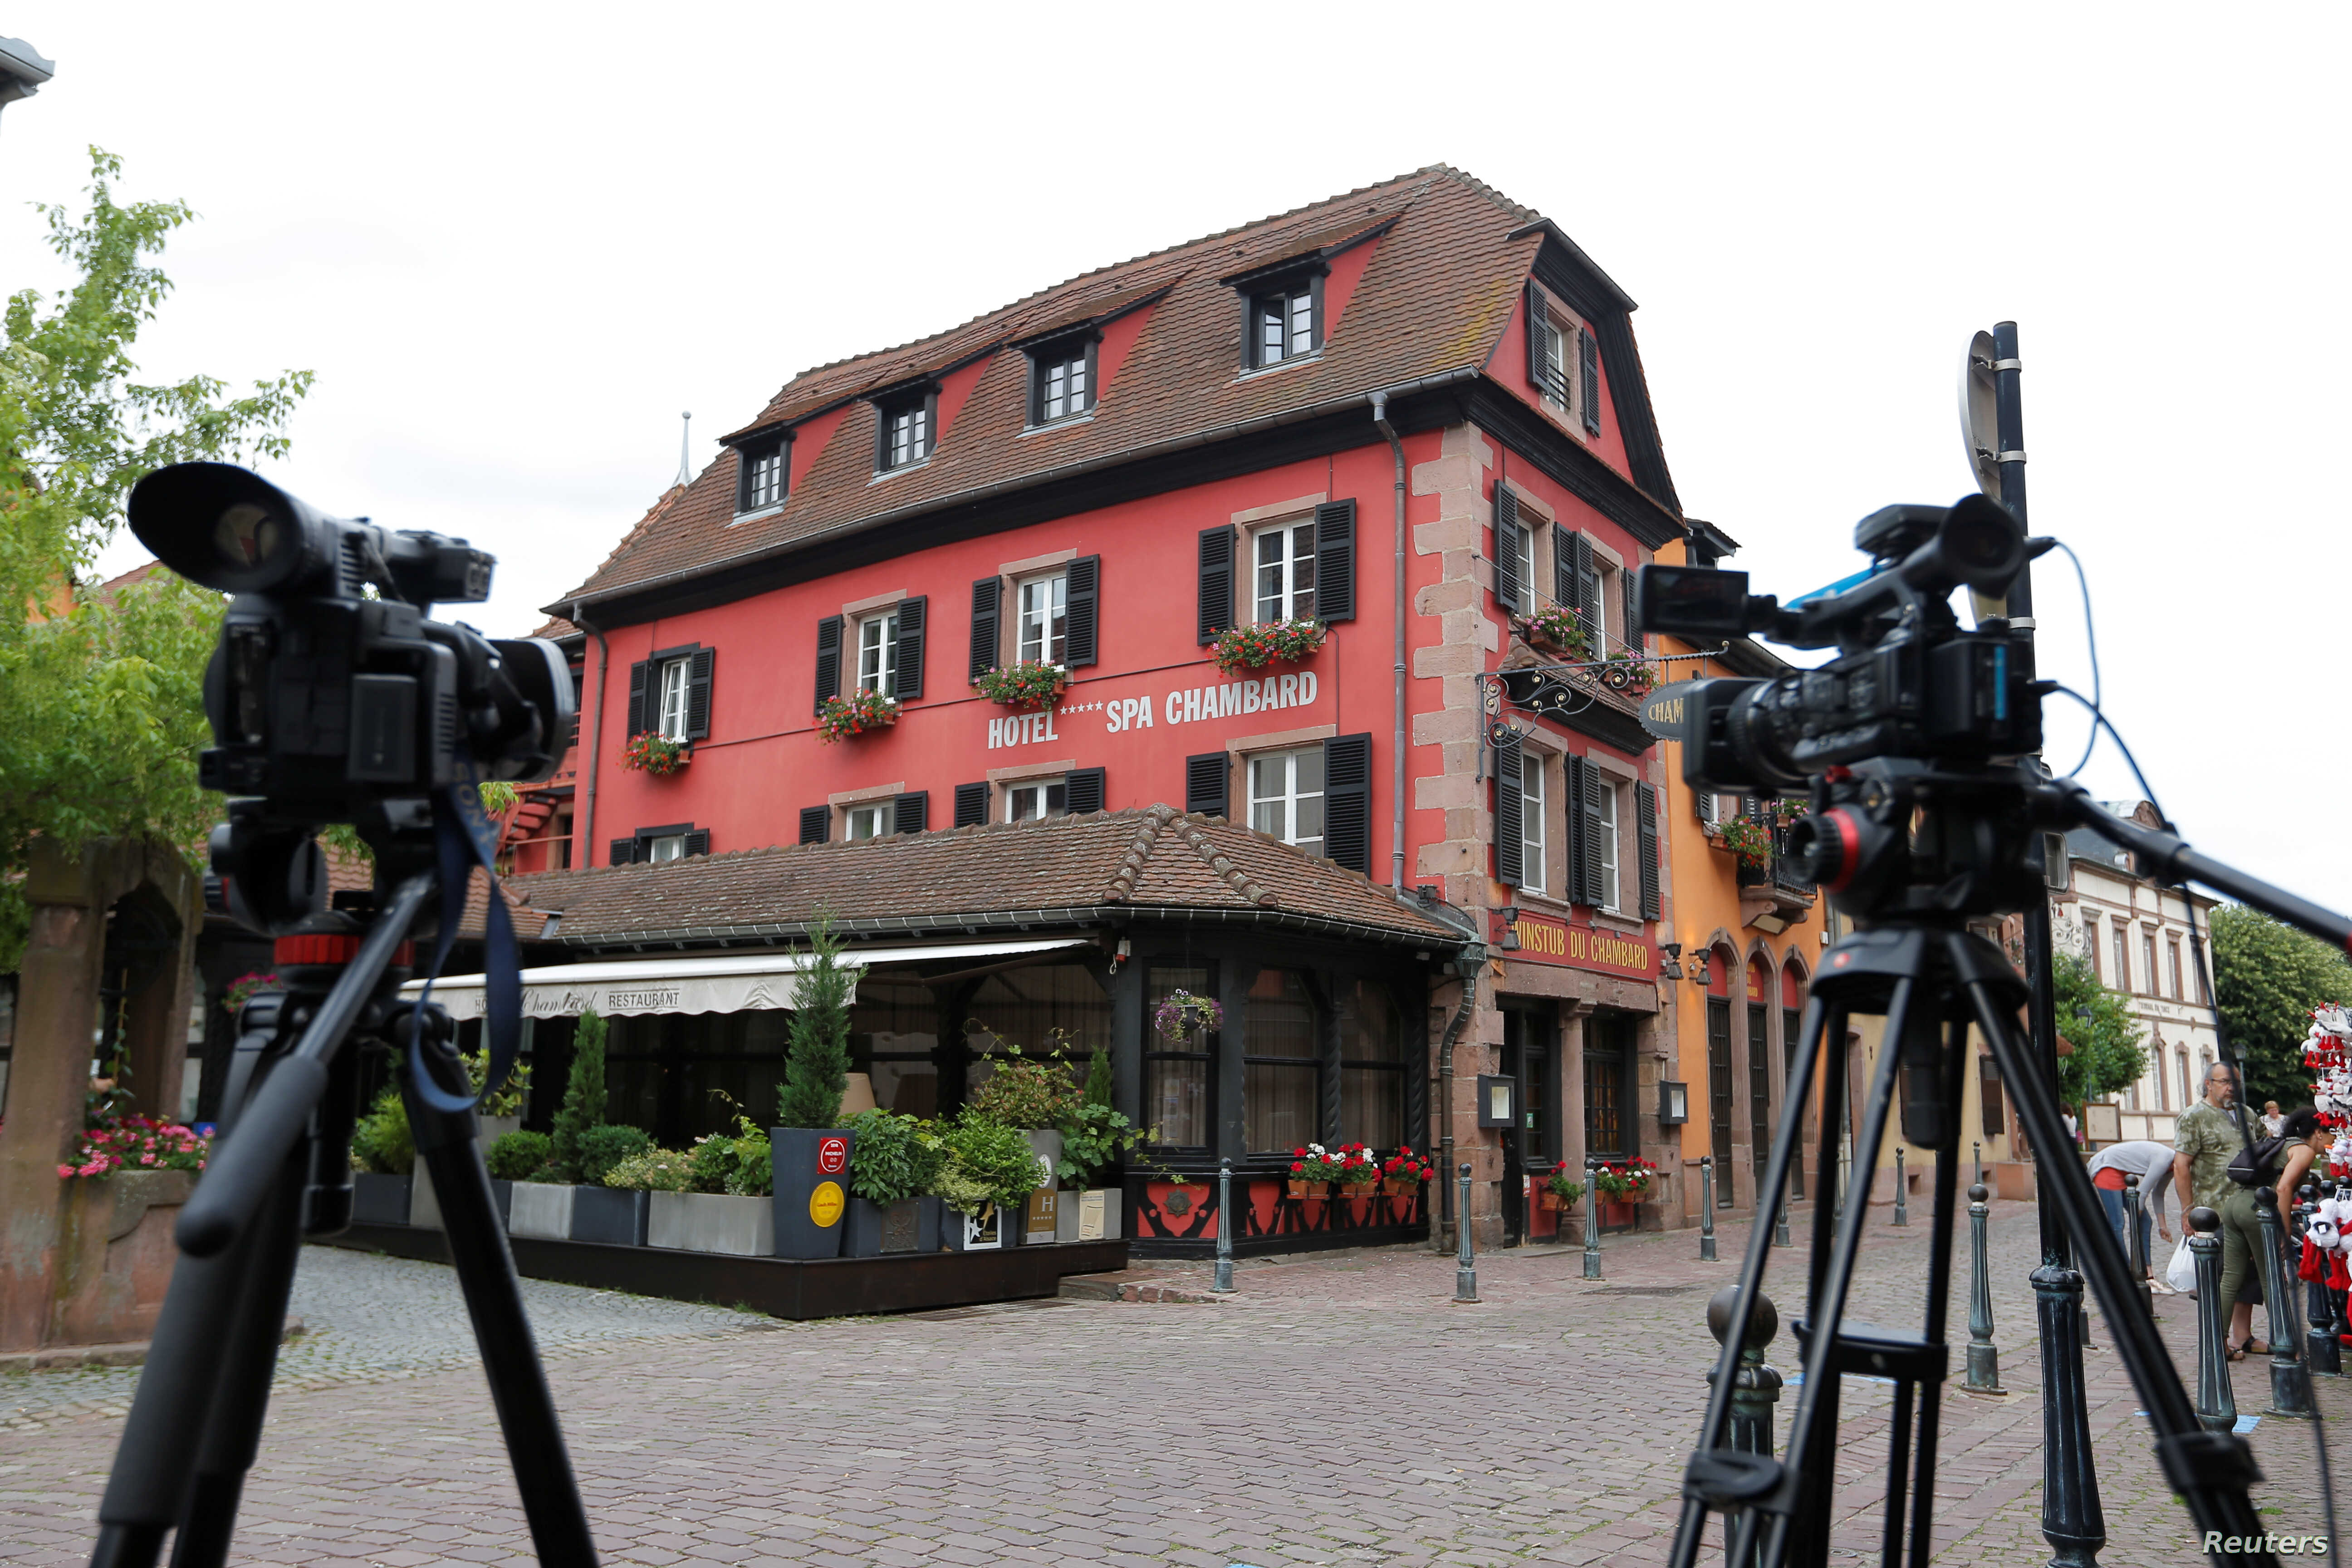 Media cameras and tripods are seen outside Le Chambard Hotel in Kaysersberg-Vignoble, France, June 8, 2018.